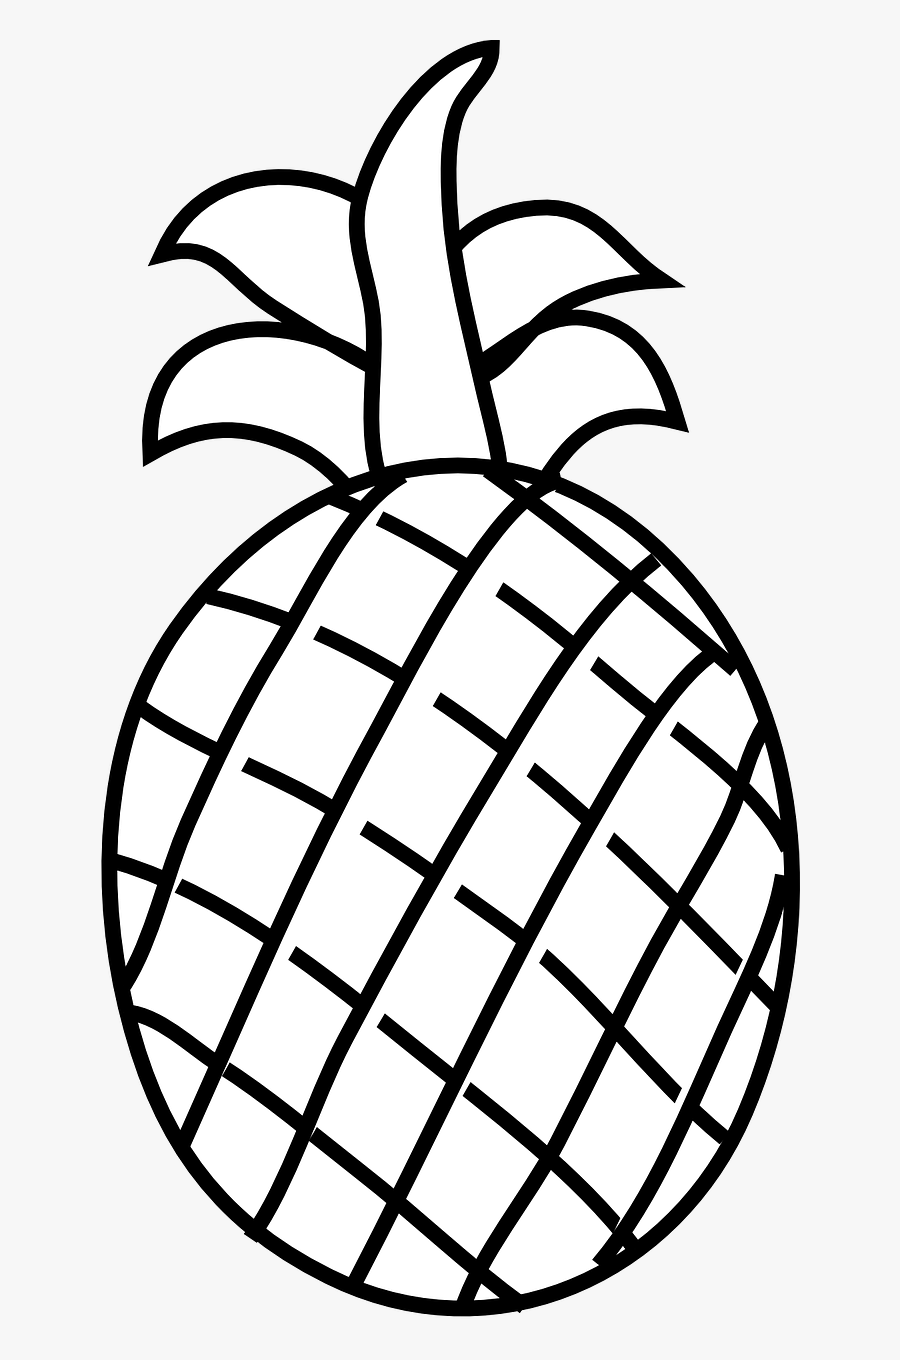 Transparent Pineapple Clipart Black And White - Pineapple ...